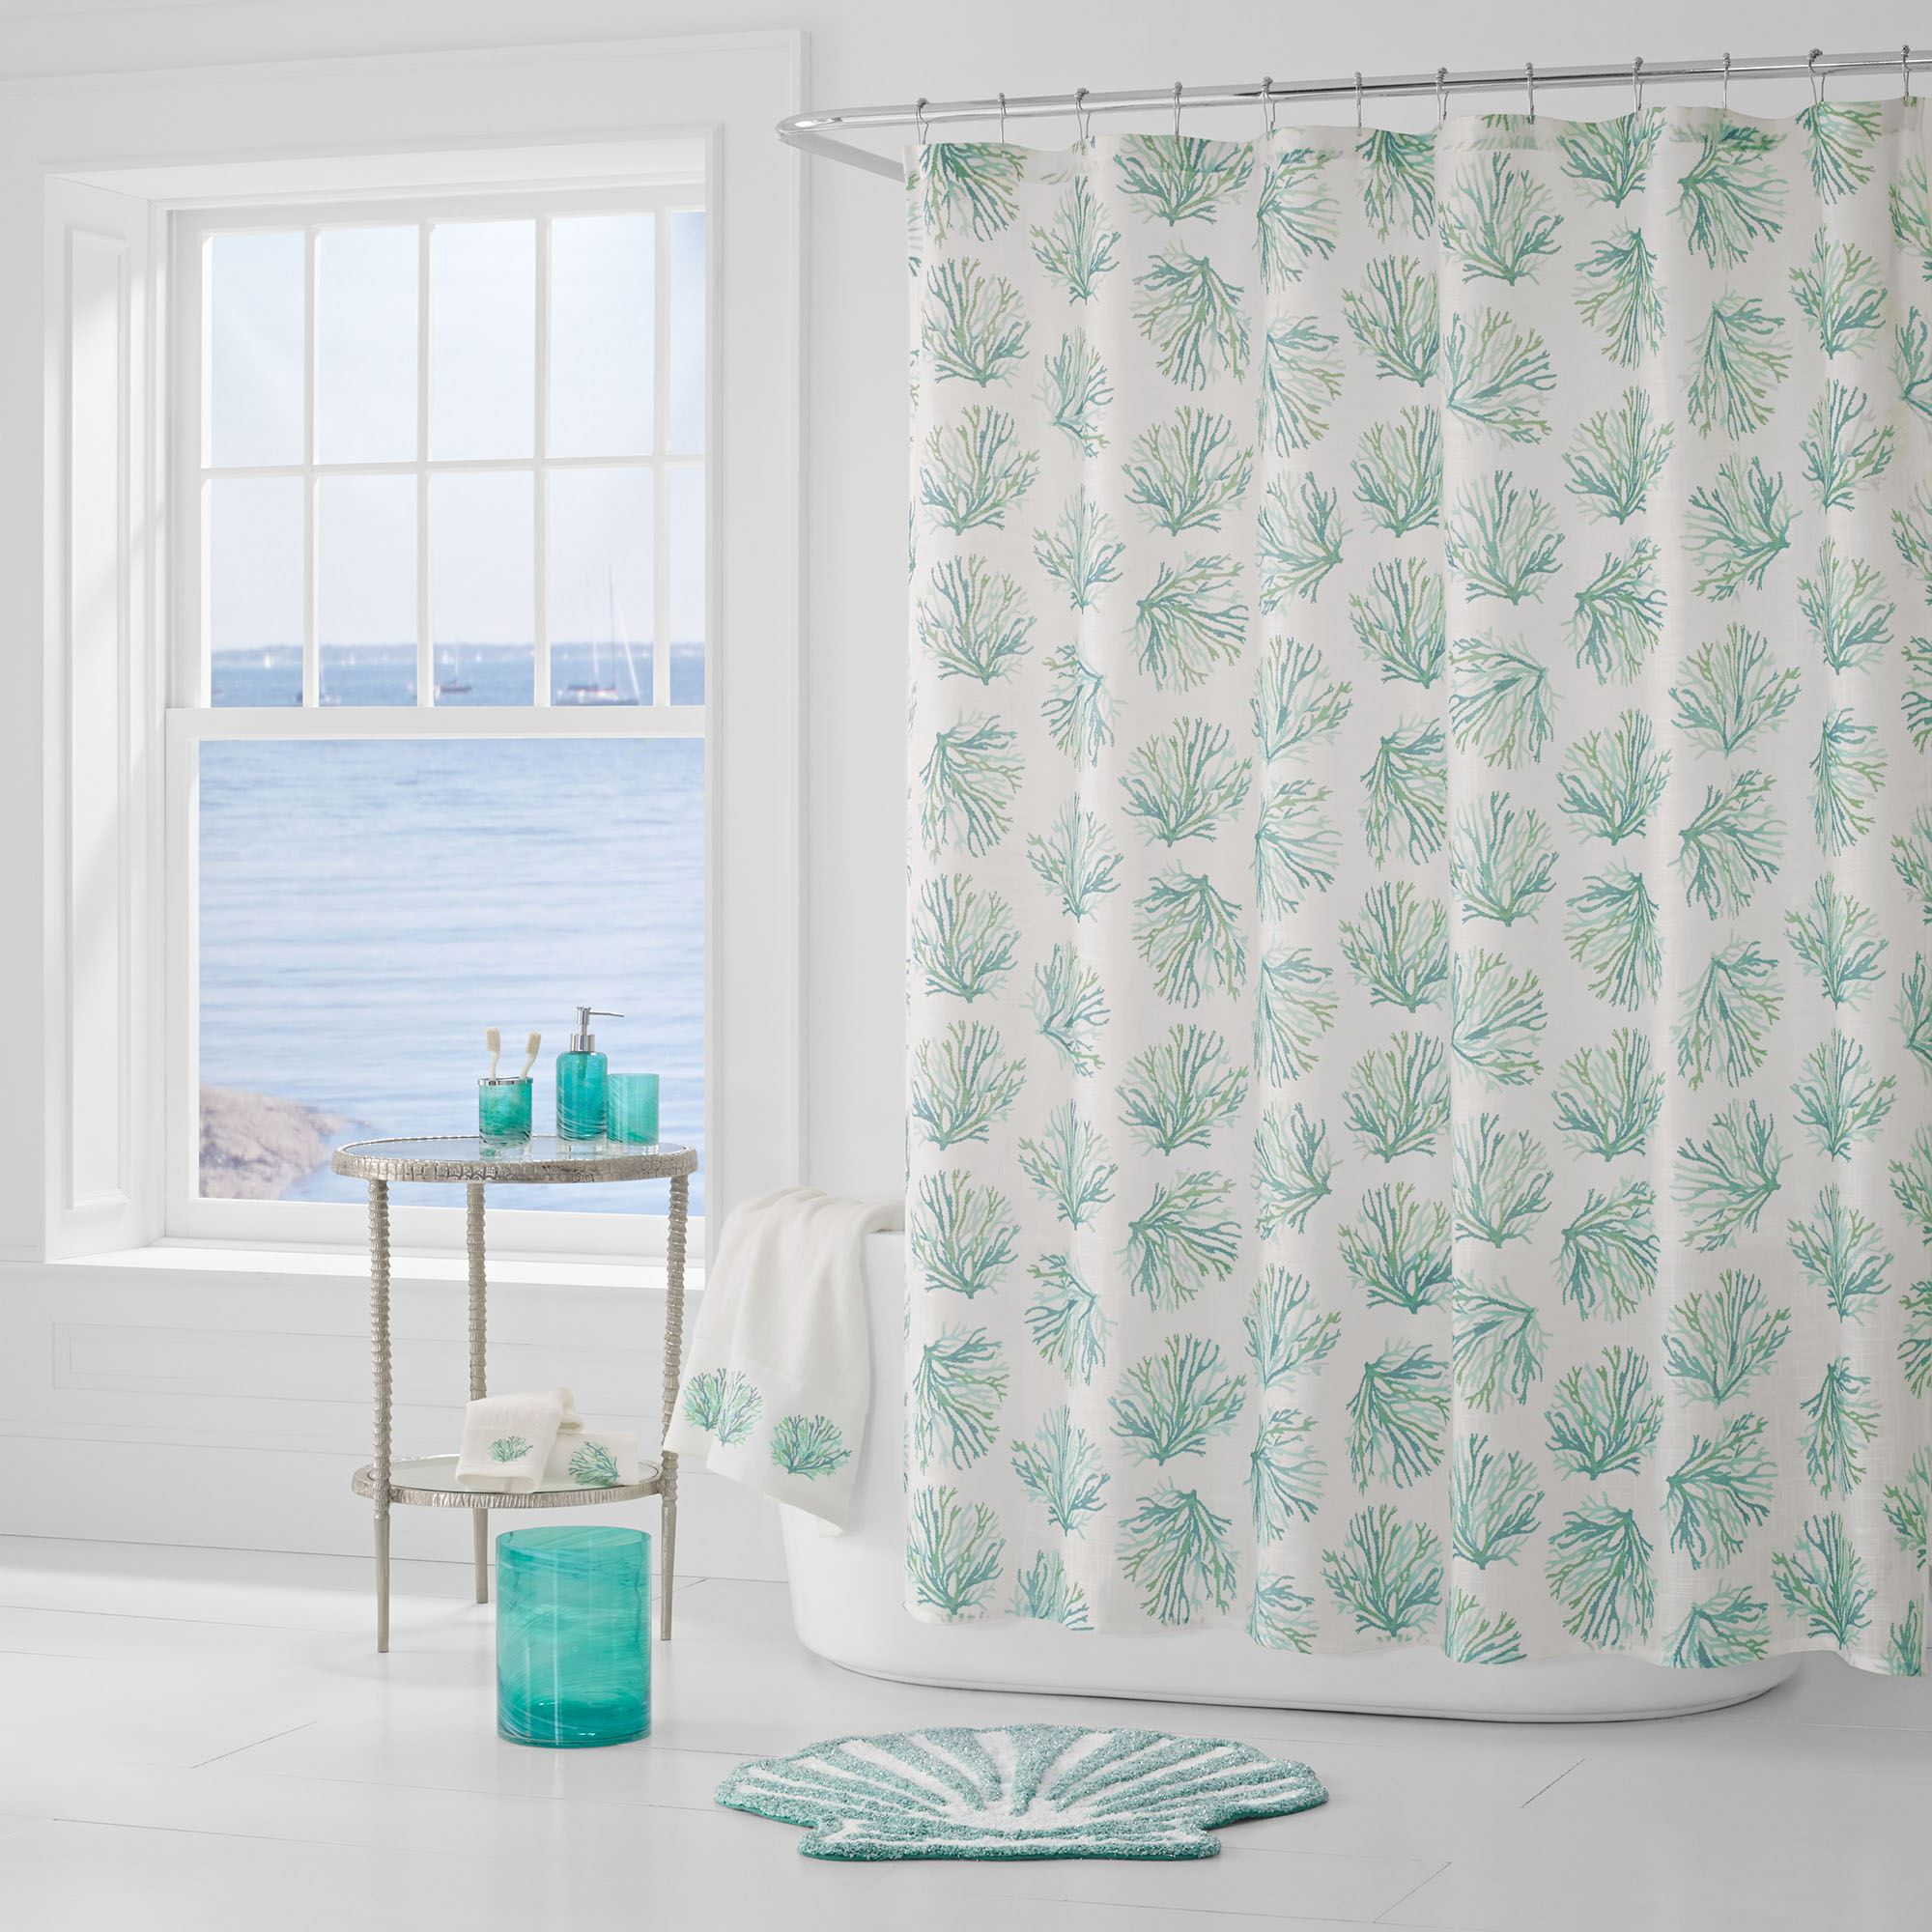 Coral Reef II Semi Sheer Shower Curtain Teal 72 X Touch To Zoom